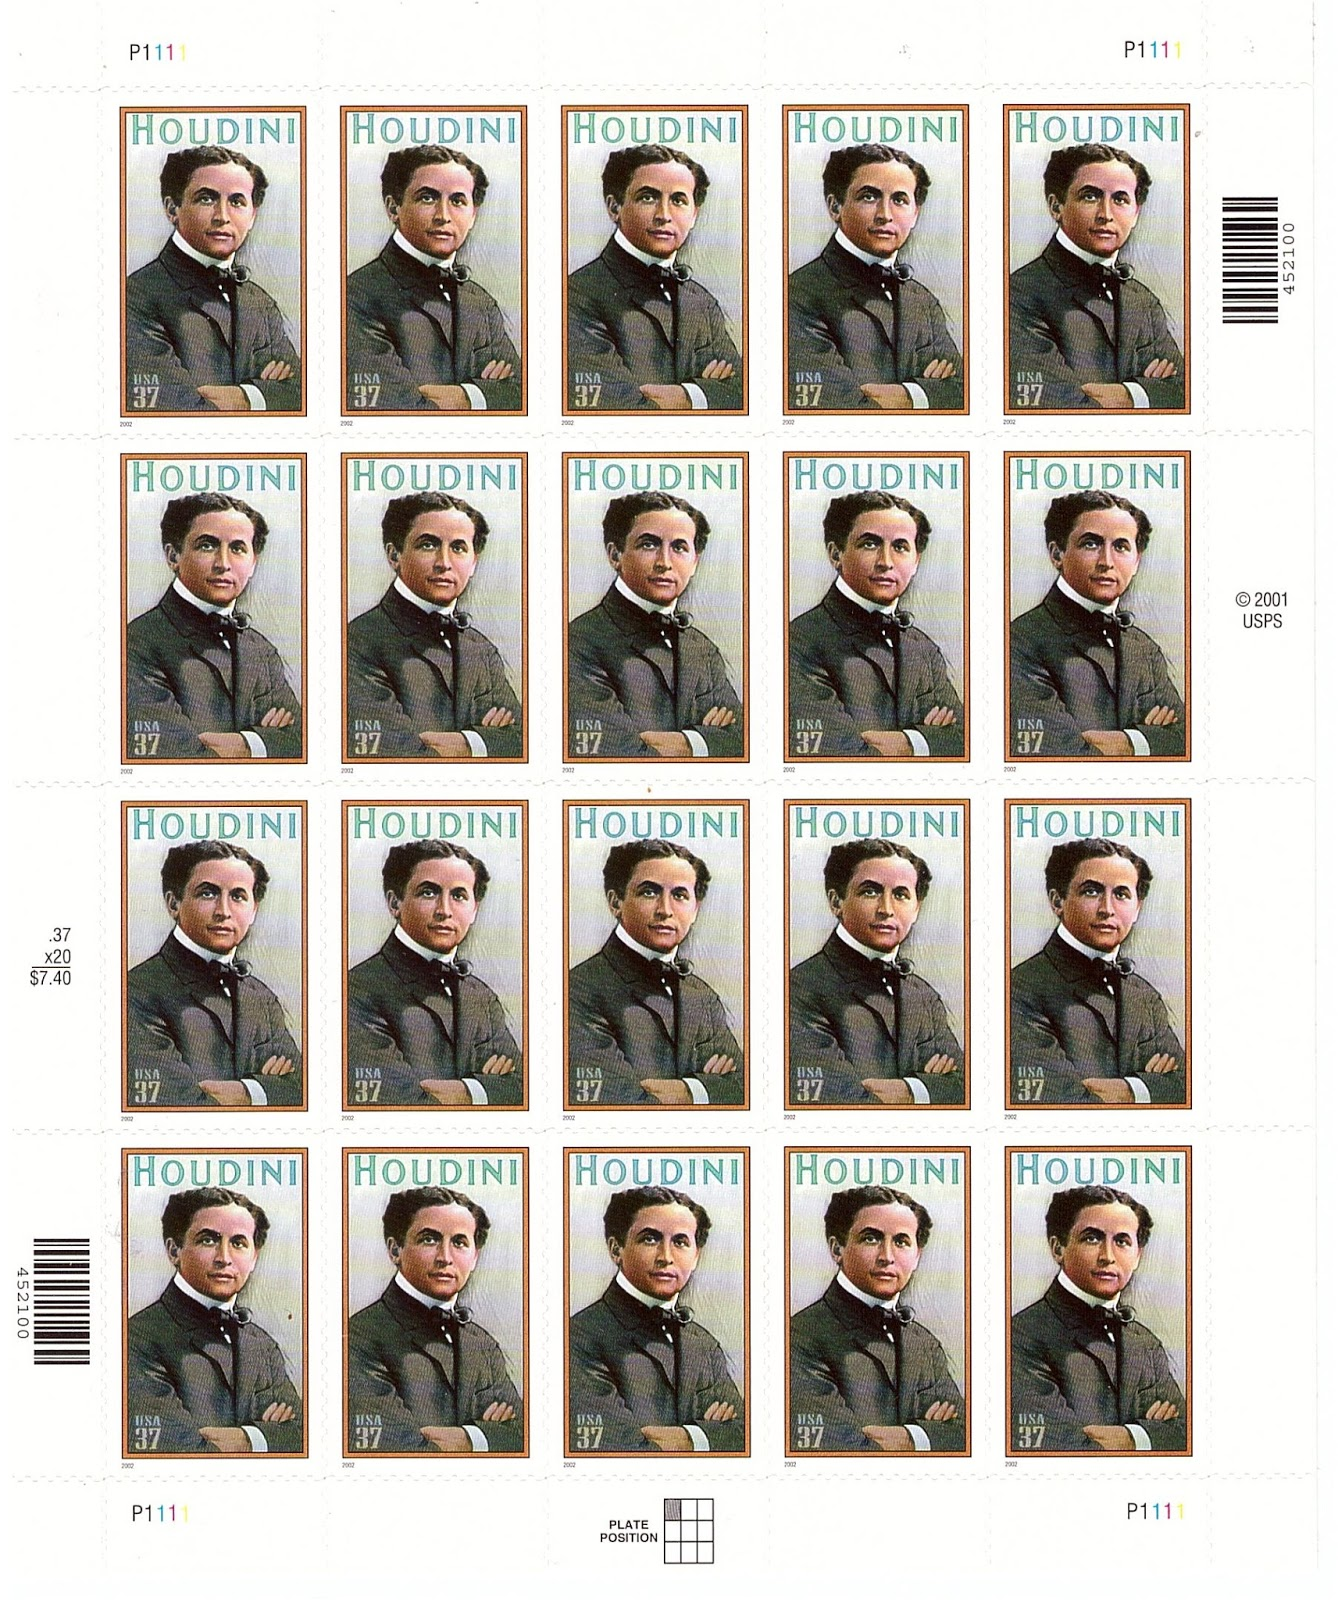 Philaquely Moi: Stamps with Hidden image - Update